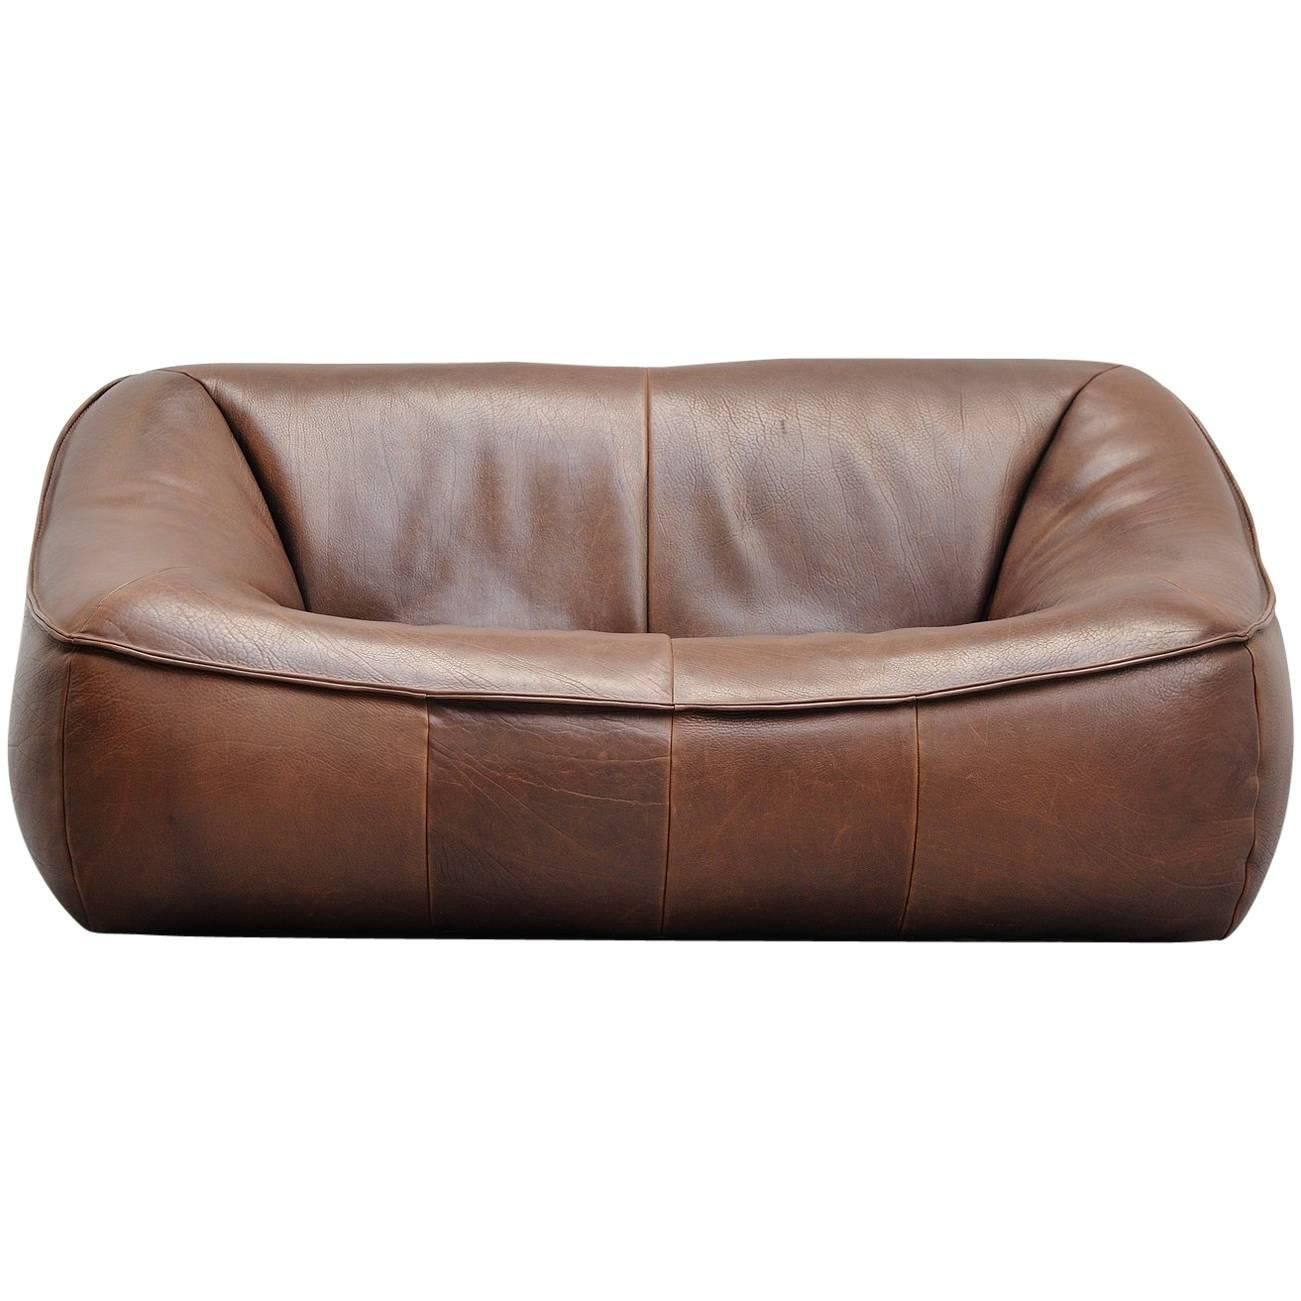 cute ligne roset sofa architecture-Fascinating Ligne Roset sofa Gallery